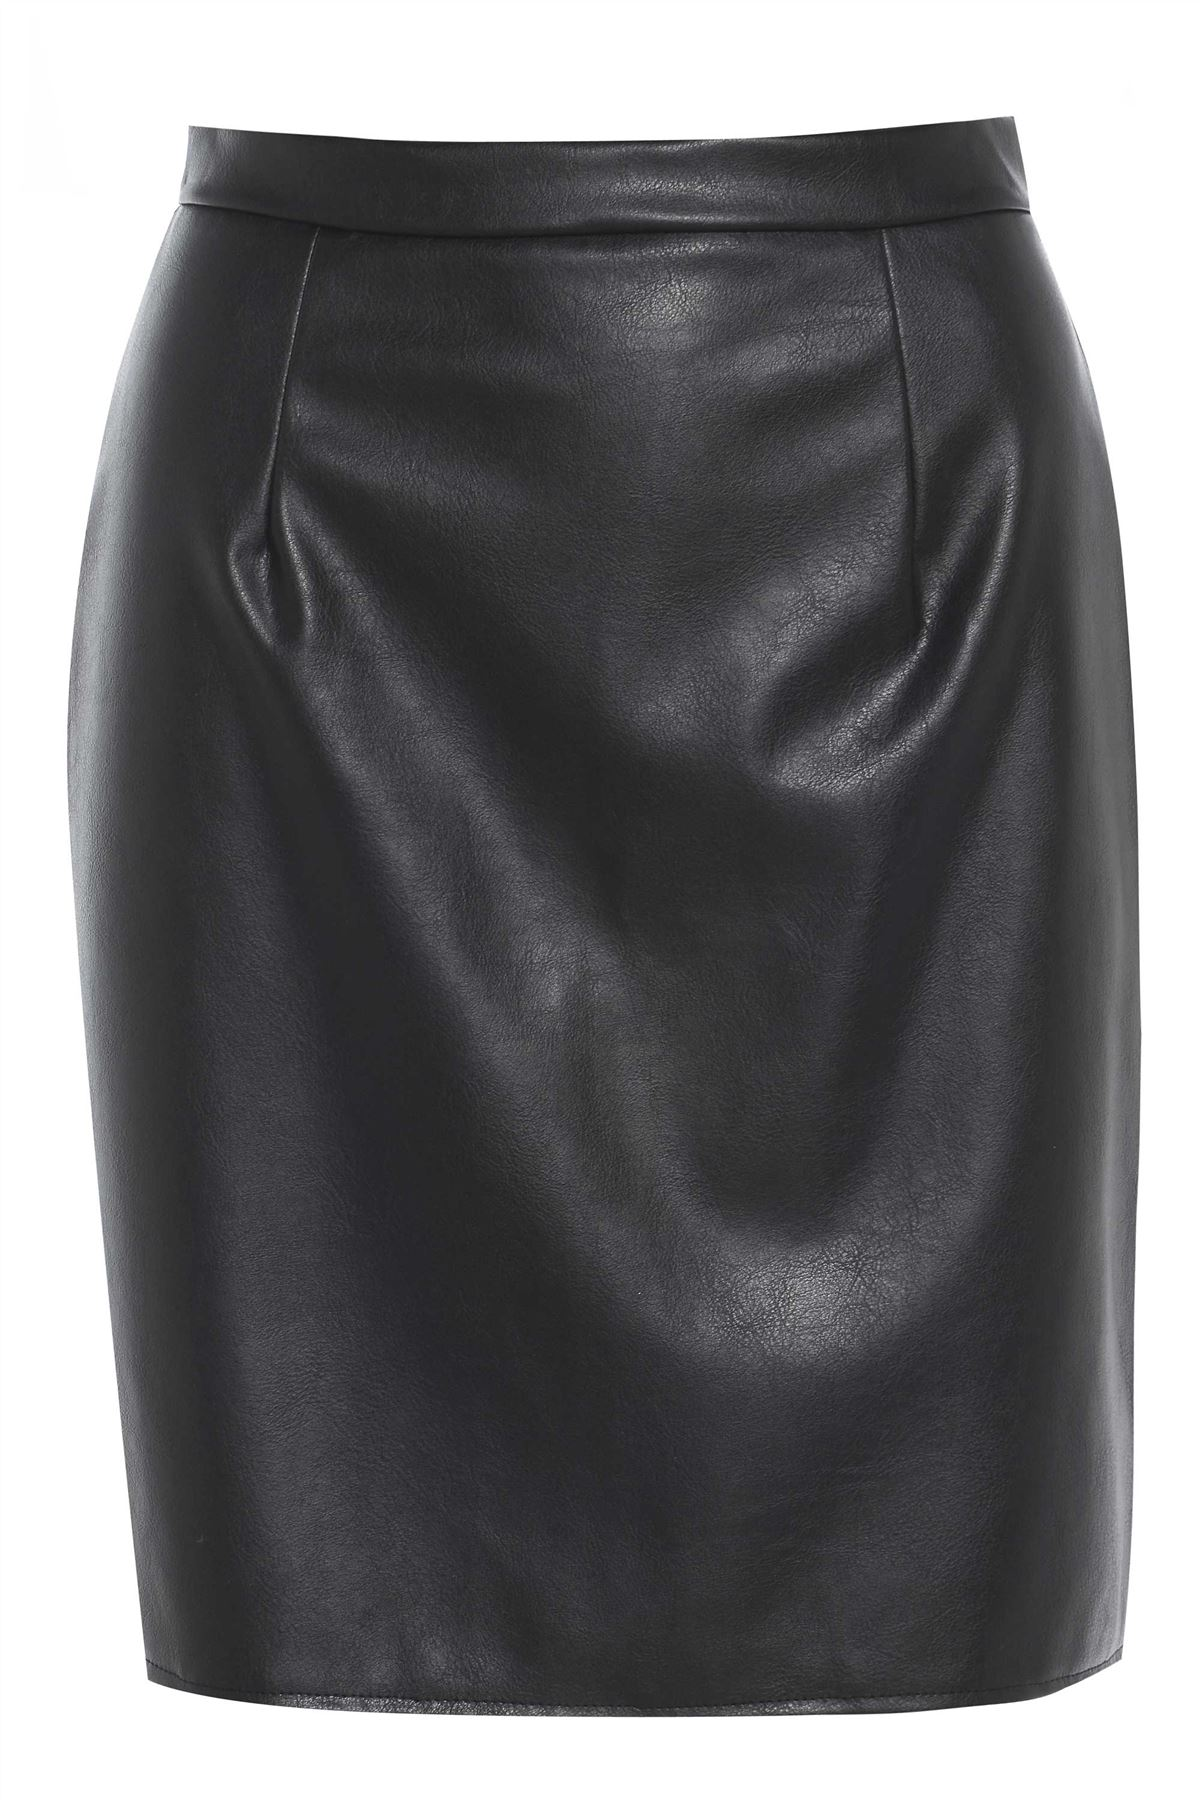 leather look a line skirt ebay